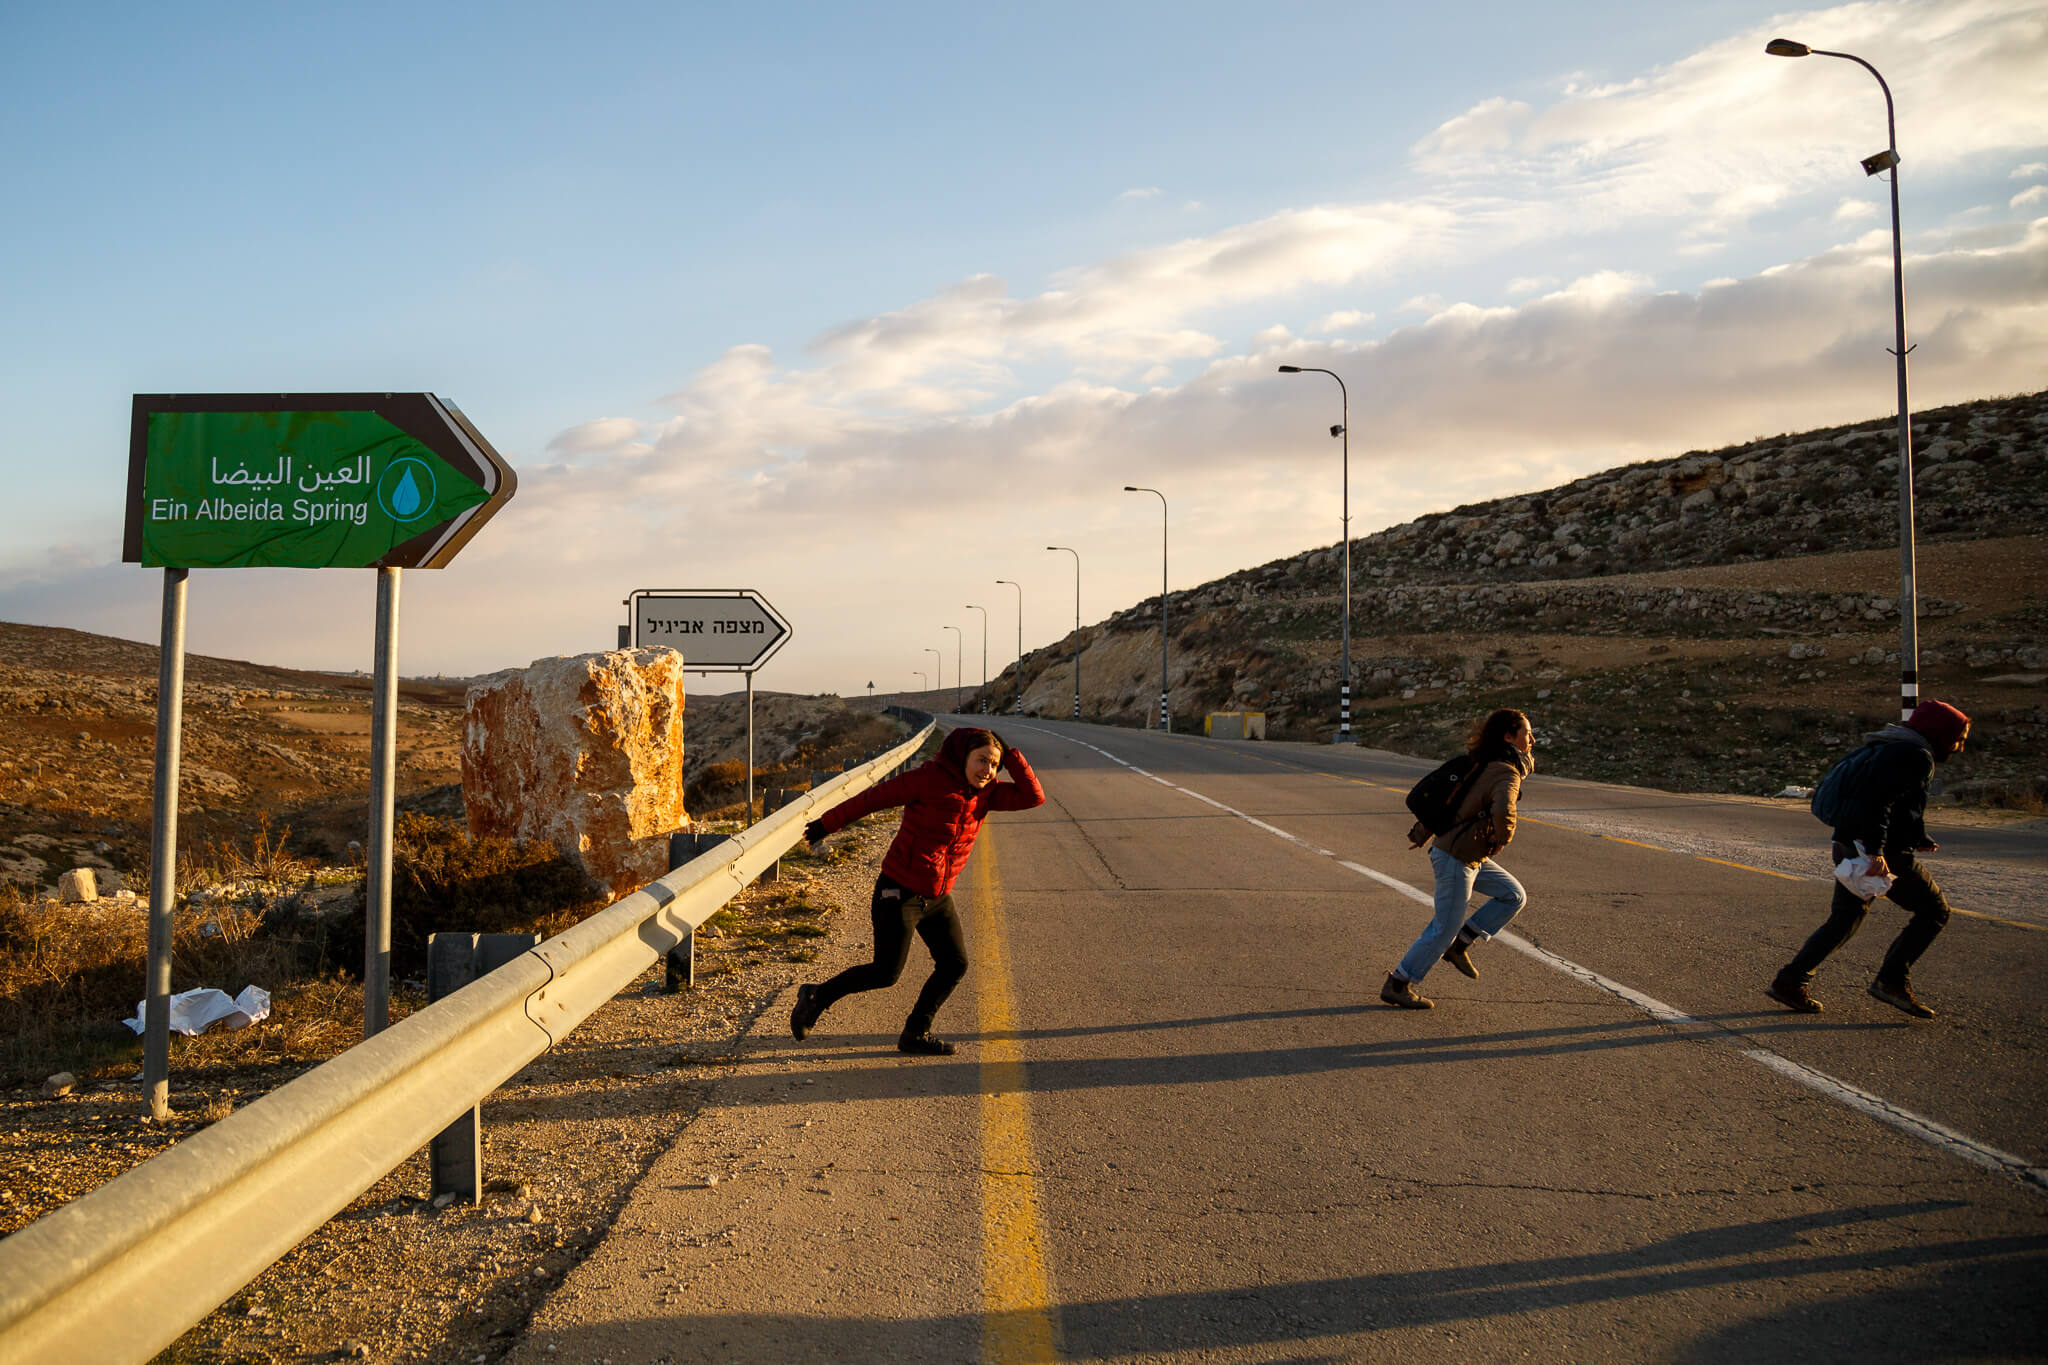 Activists dash across a highway after posting a sign in Arabic leading to Ein al-Beida, or Avigayil Spring. (Photo: Miriam Deprez)